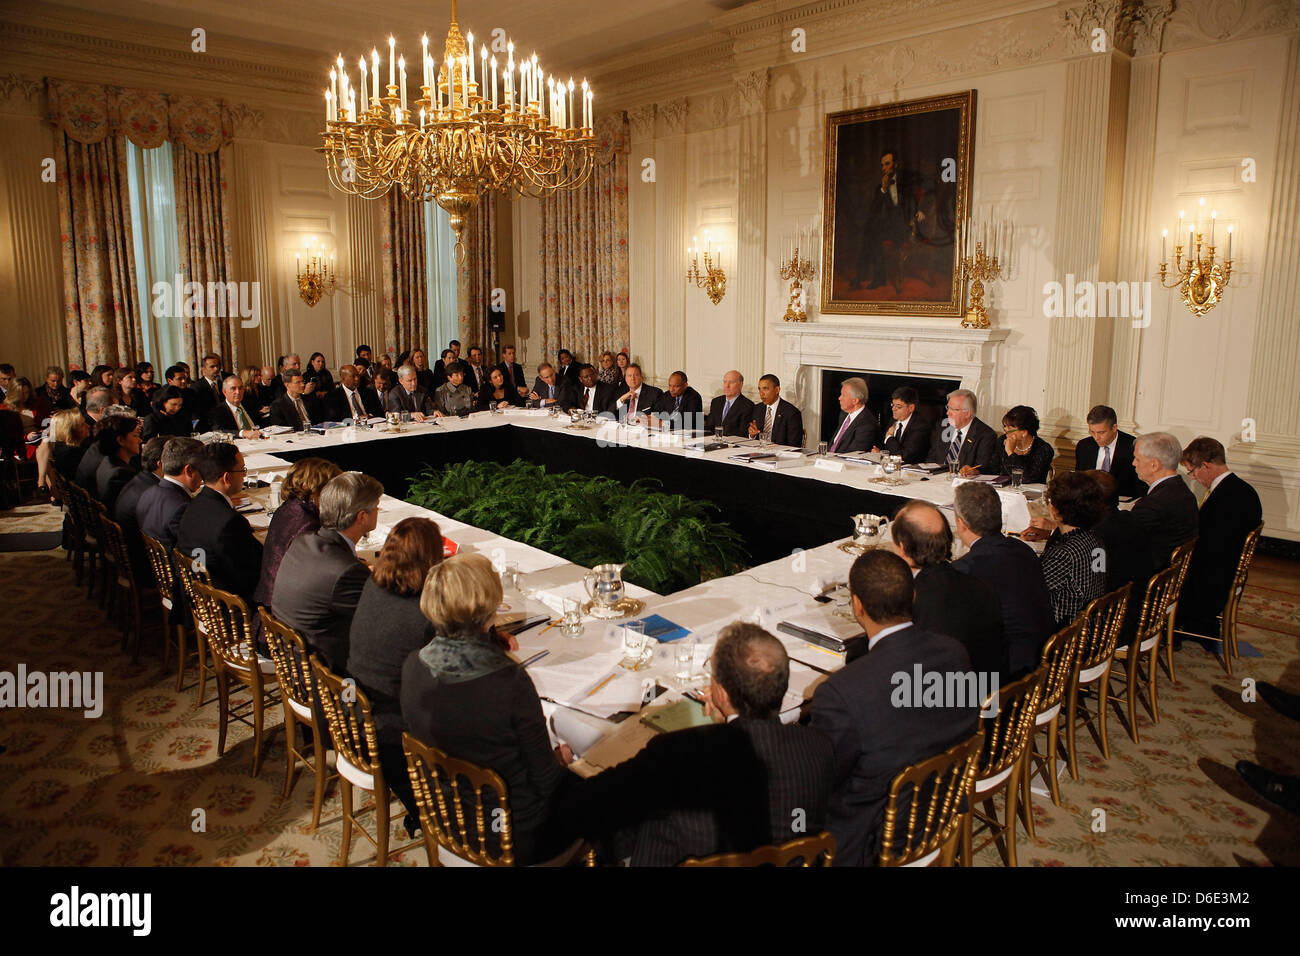 United States President Barack Obama meets with his Council on Jobs and Competitiveness, group of business leaders - Stock Image